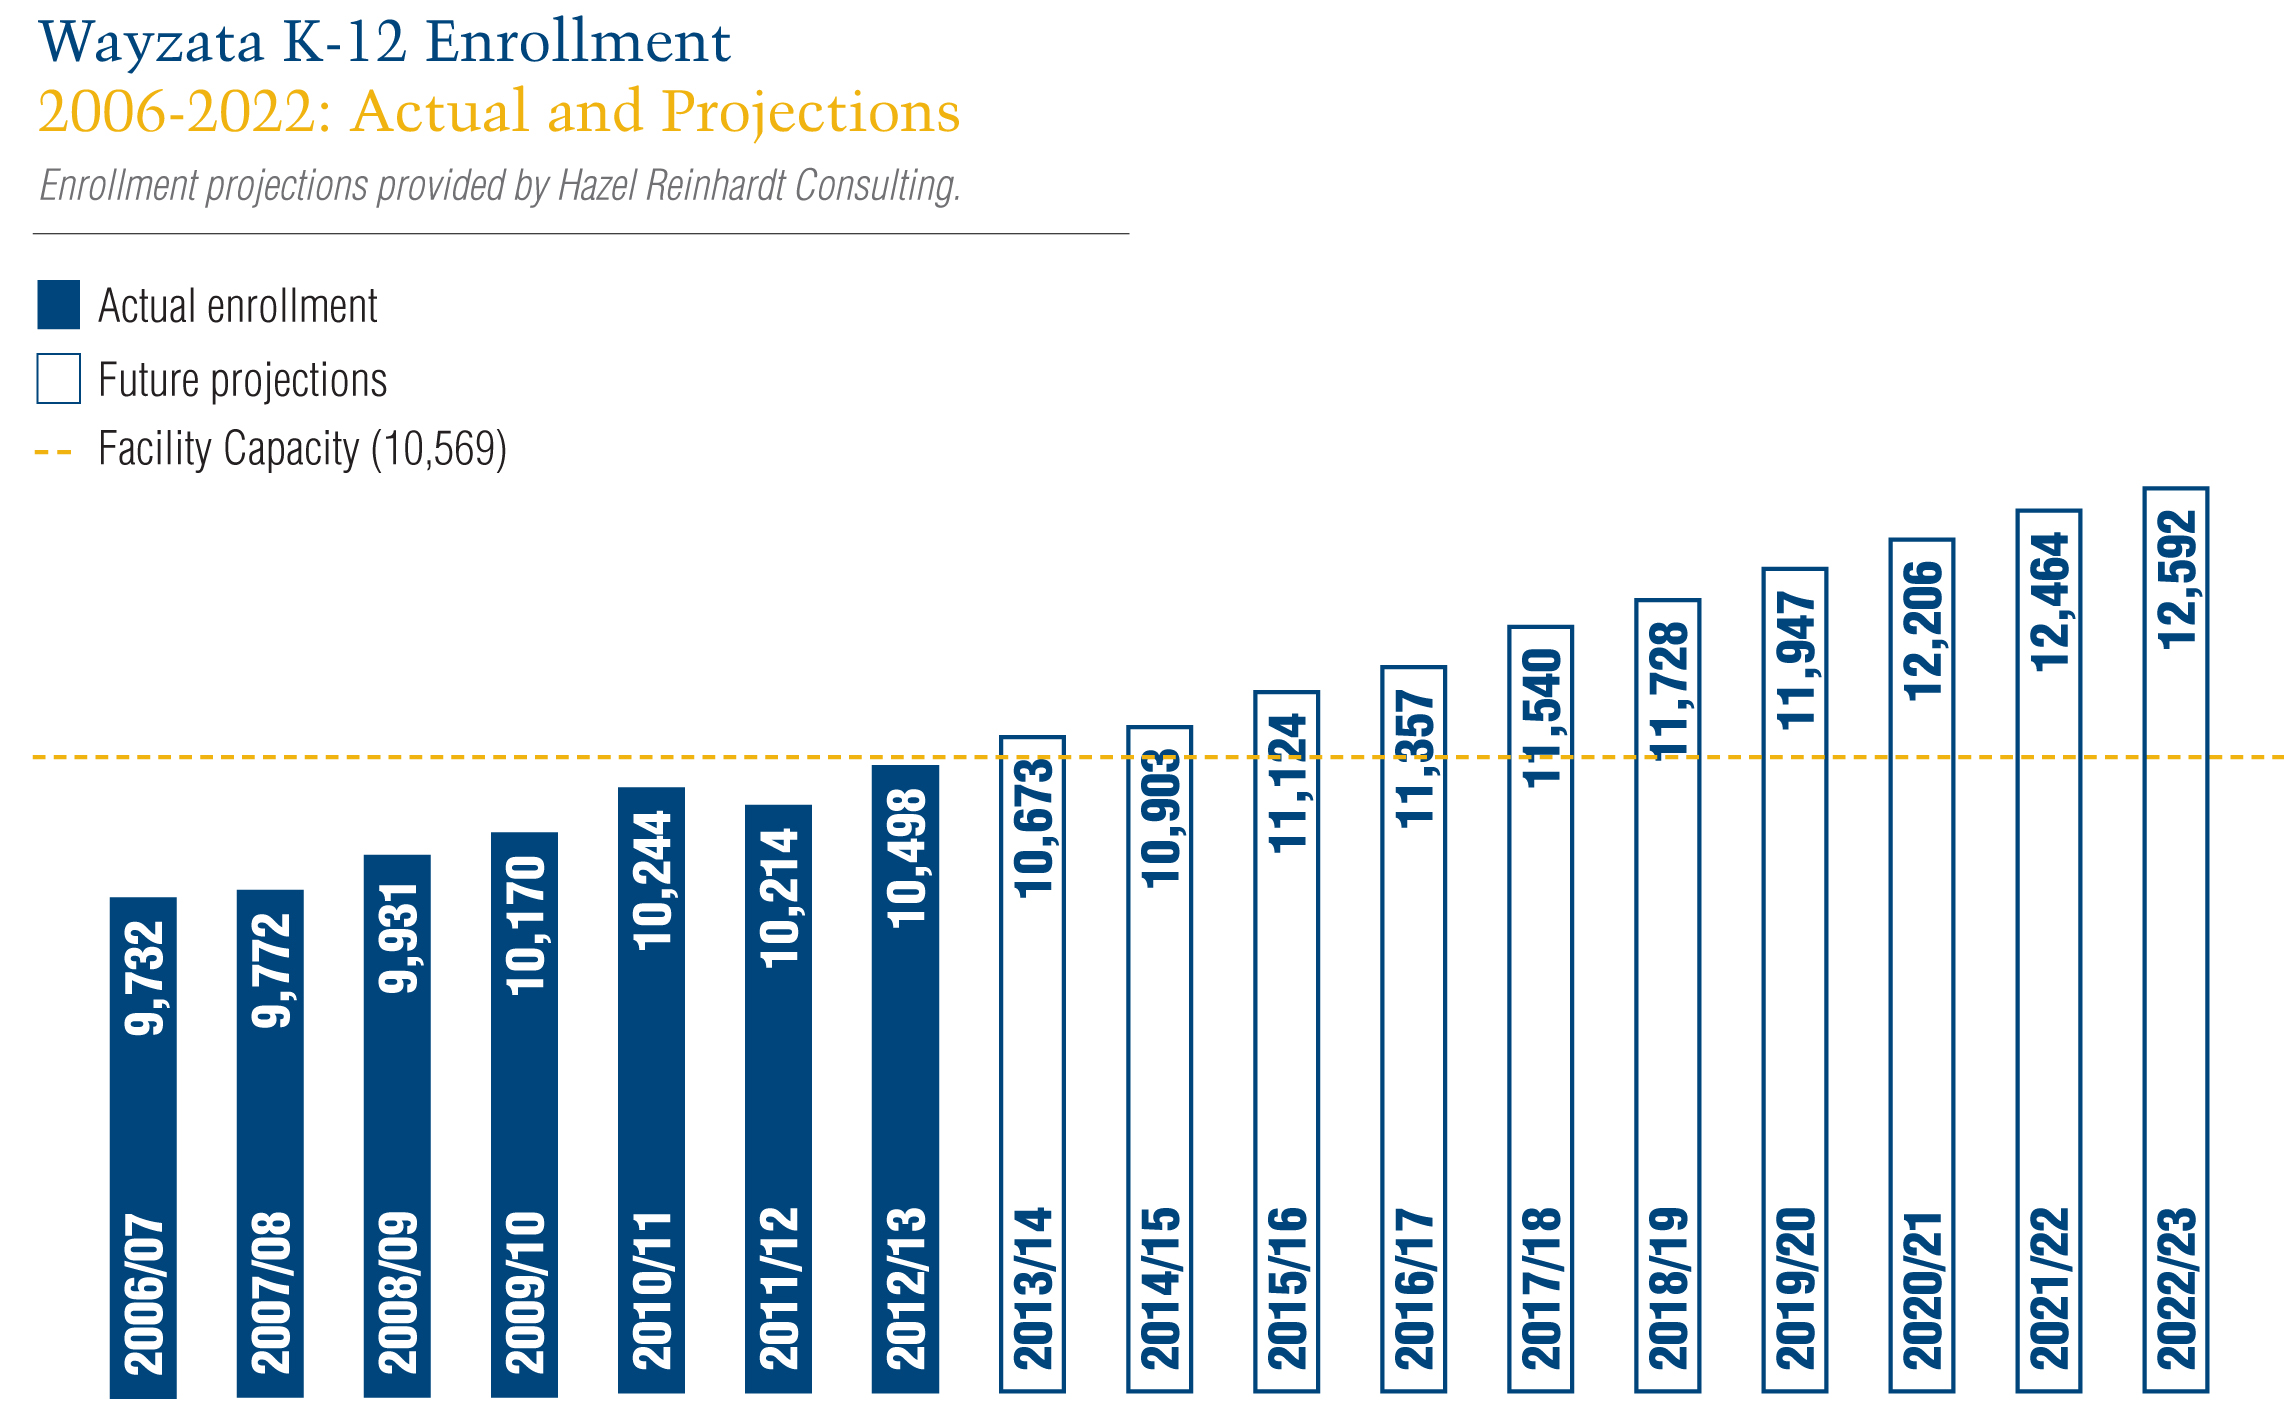 Wayzata K-12 Enrollment Projections